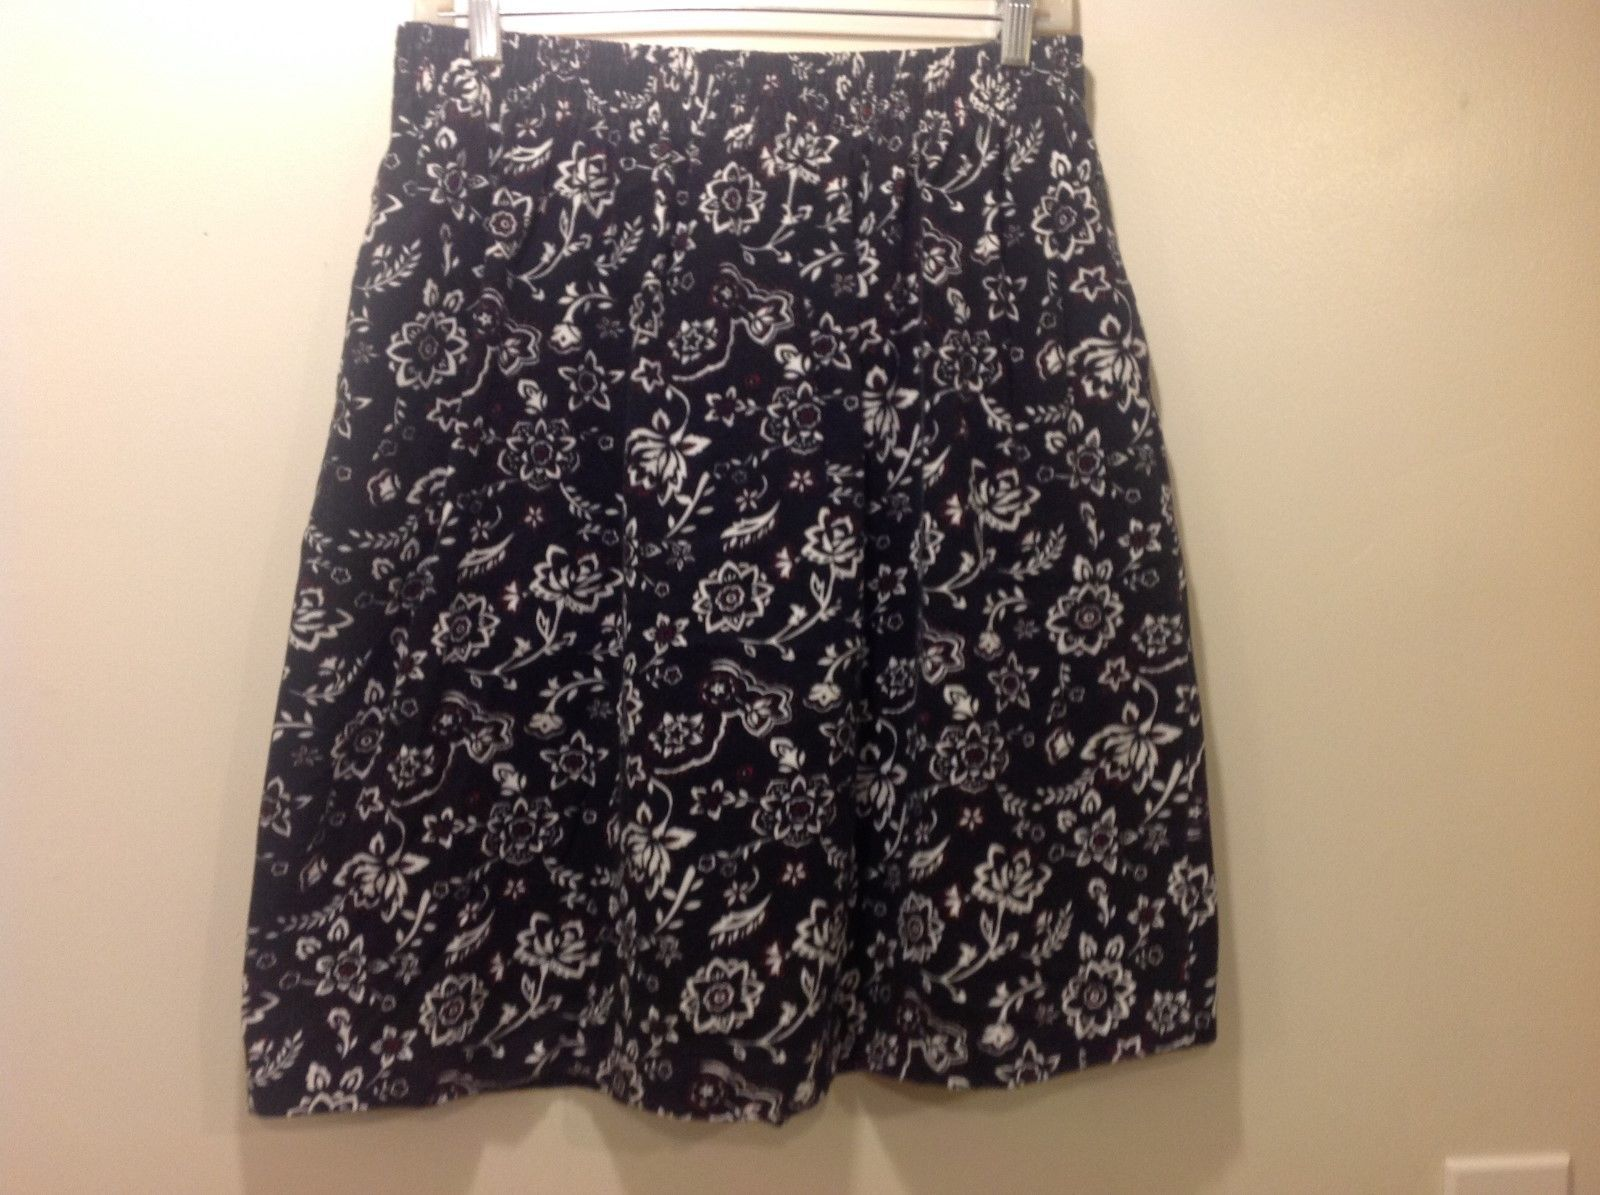 Cynthia J Black Skirt w White/Red Floral Design Sz 1X